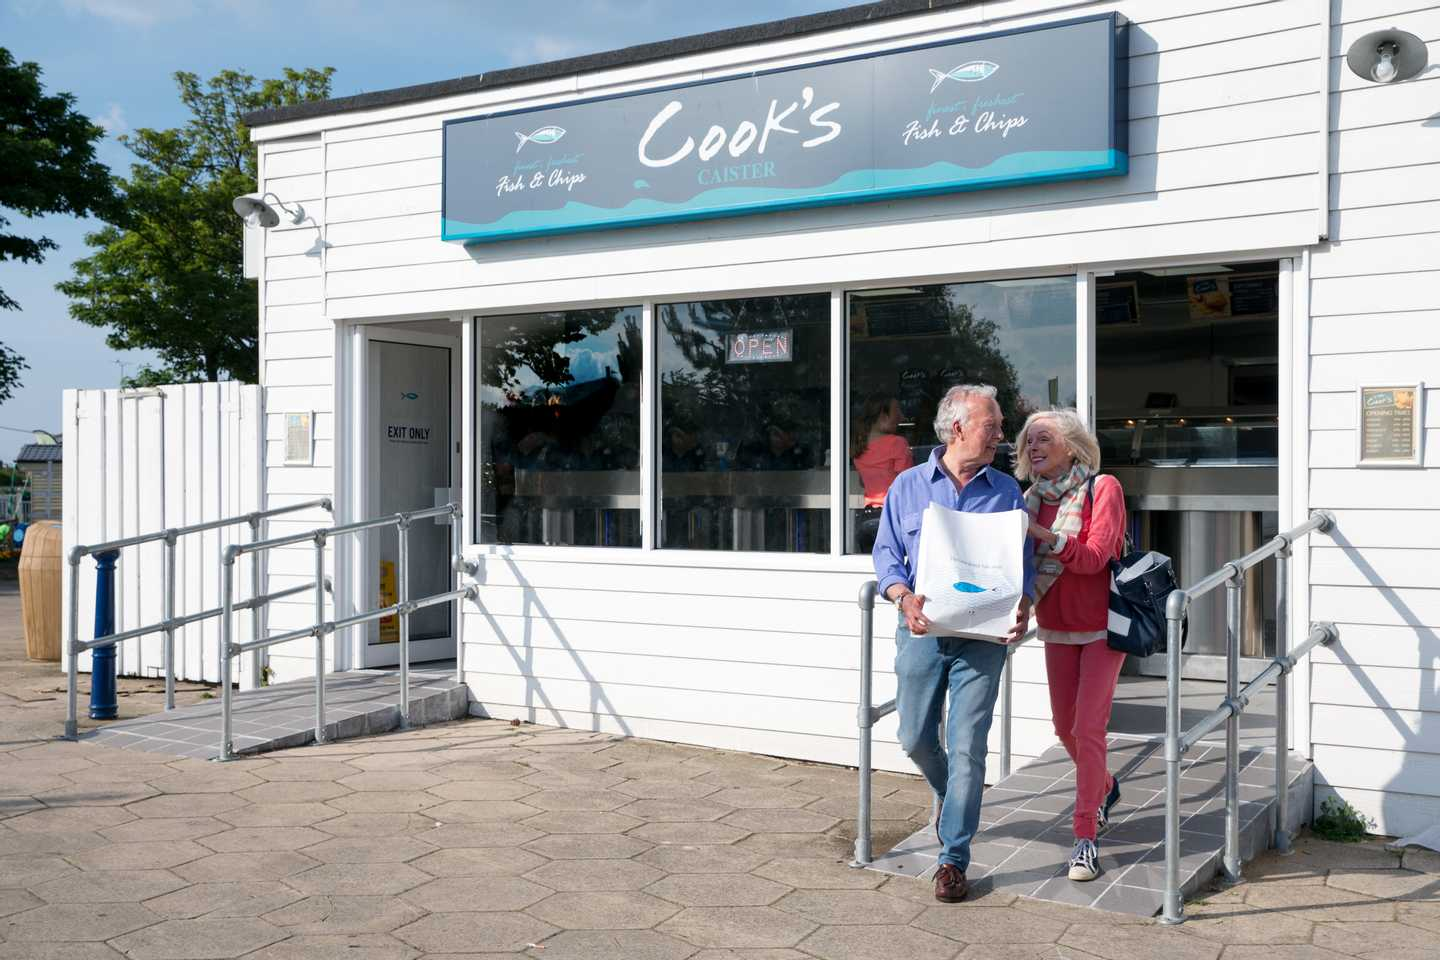 Elderly couple coming out of Cook's fish and chips with their dinner